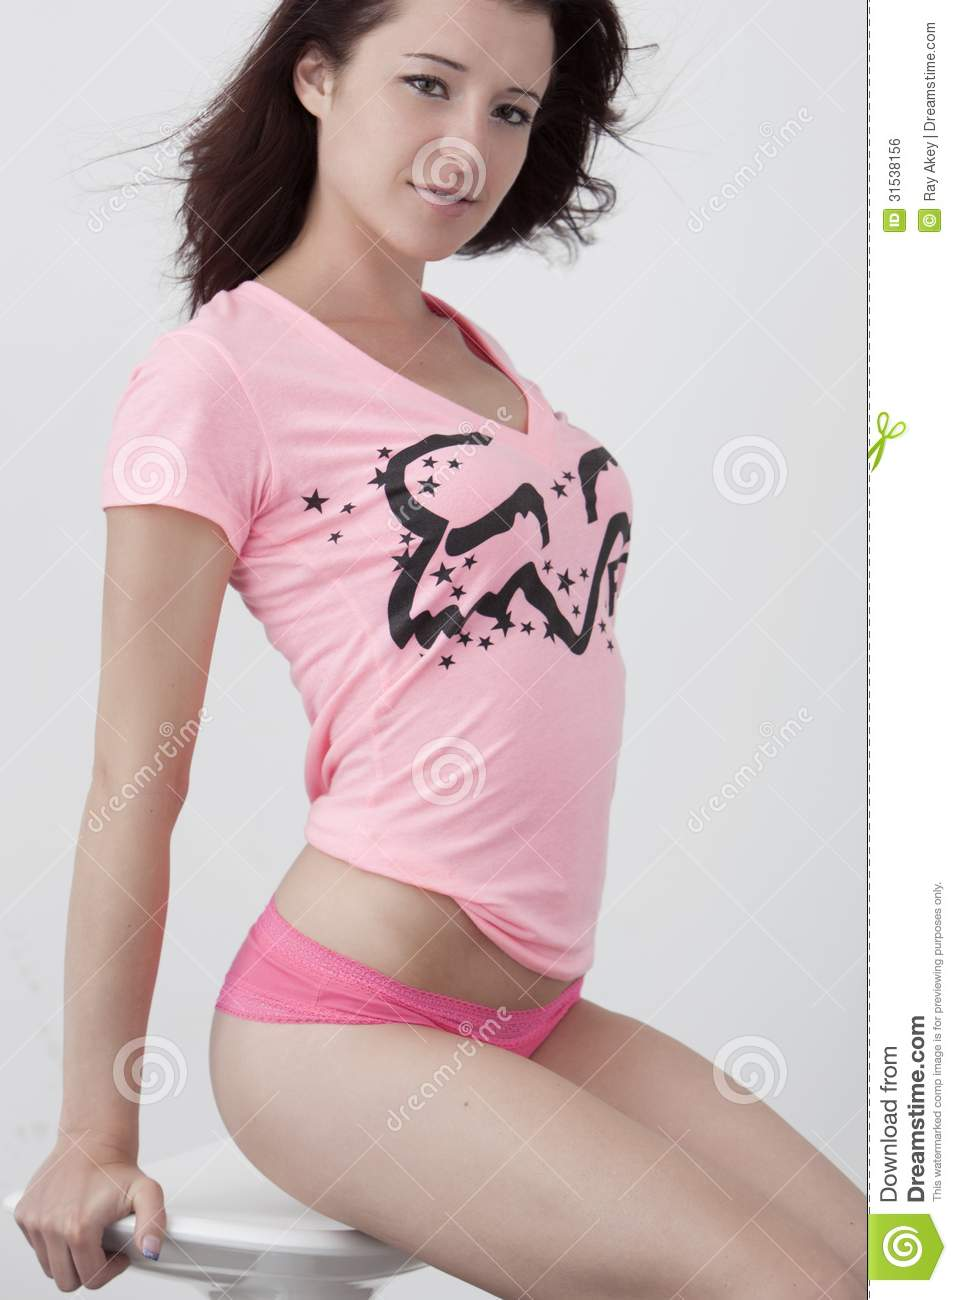 T shirt and panties on song